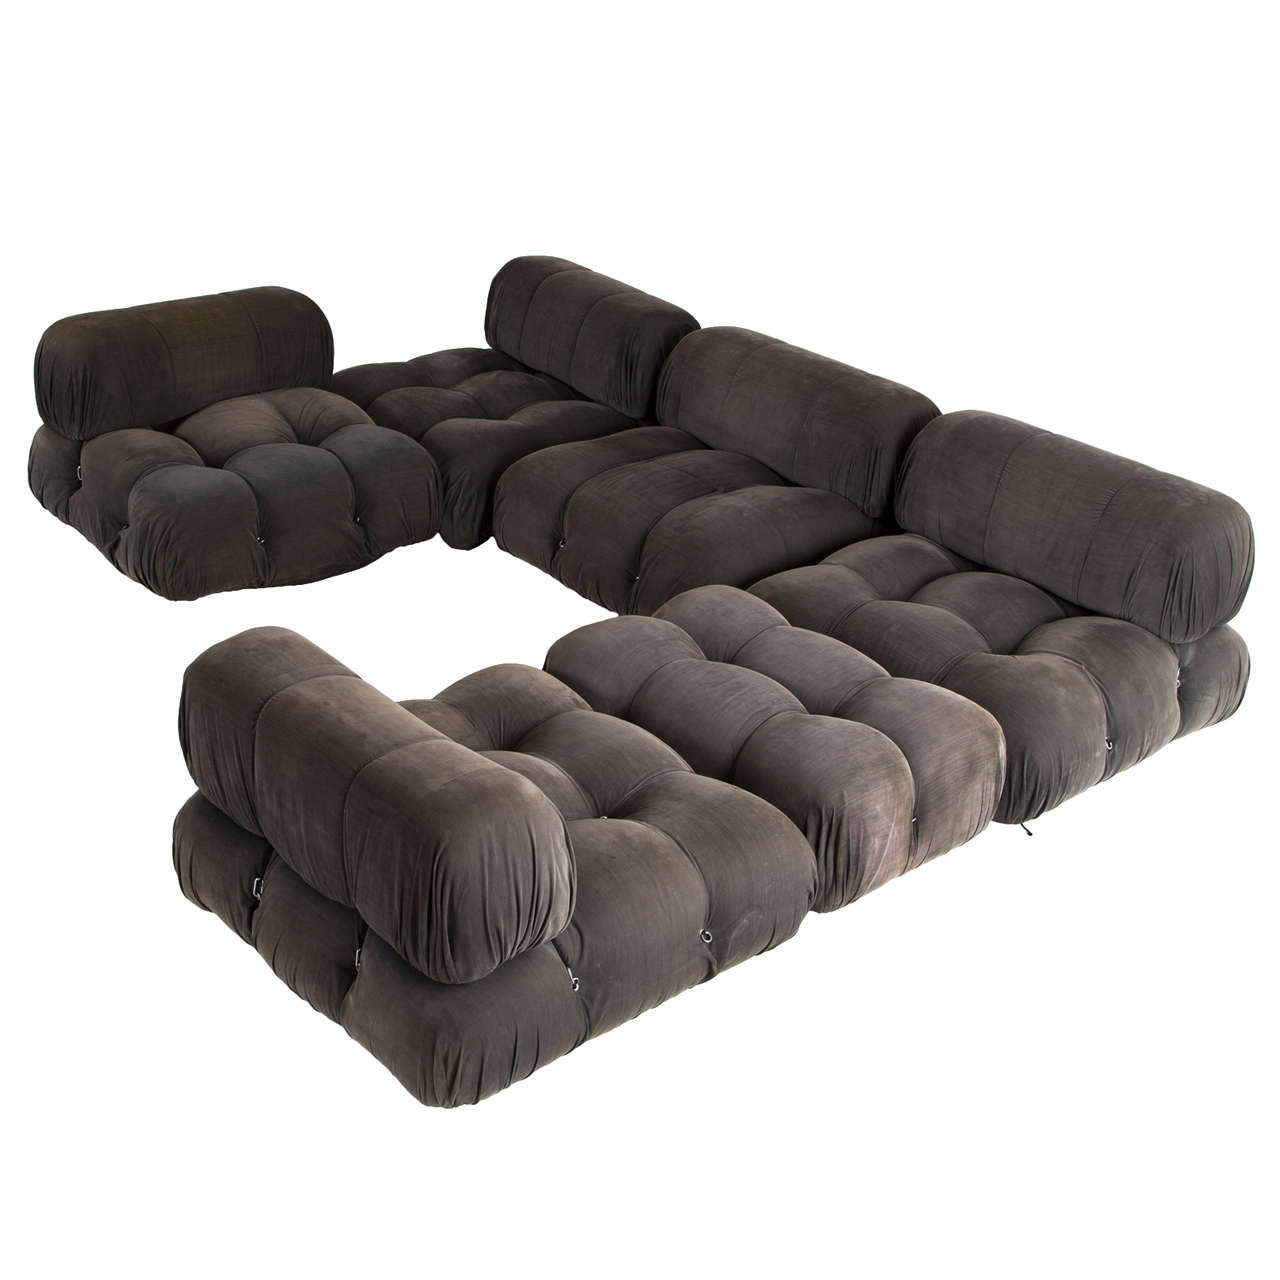 39 camaleonda 39 modular sofa by mario bellini at 1stdibs. Black Bedroom Furniture Sets. Home Design Ideas